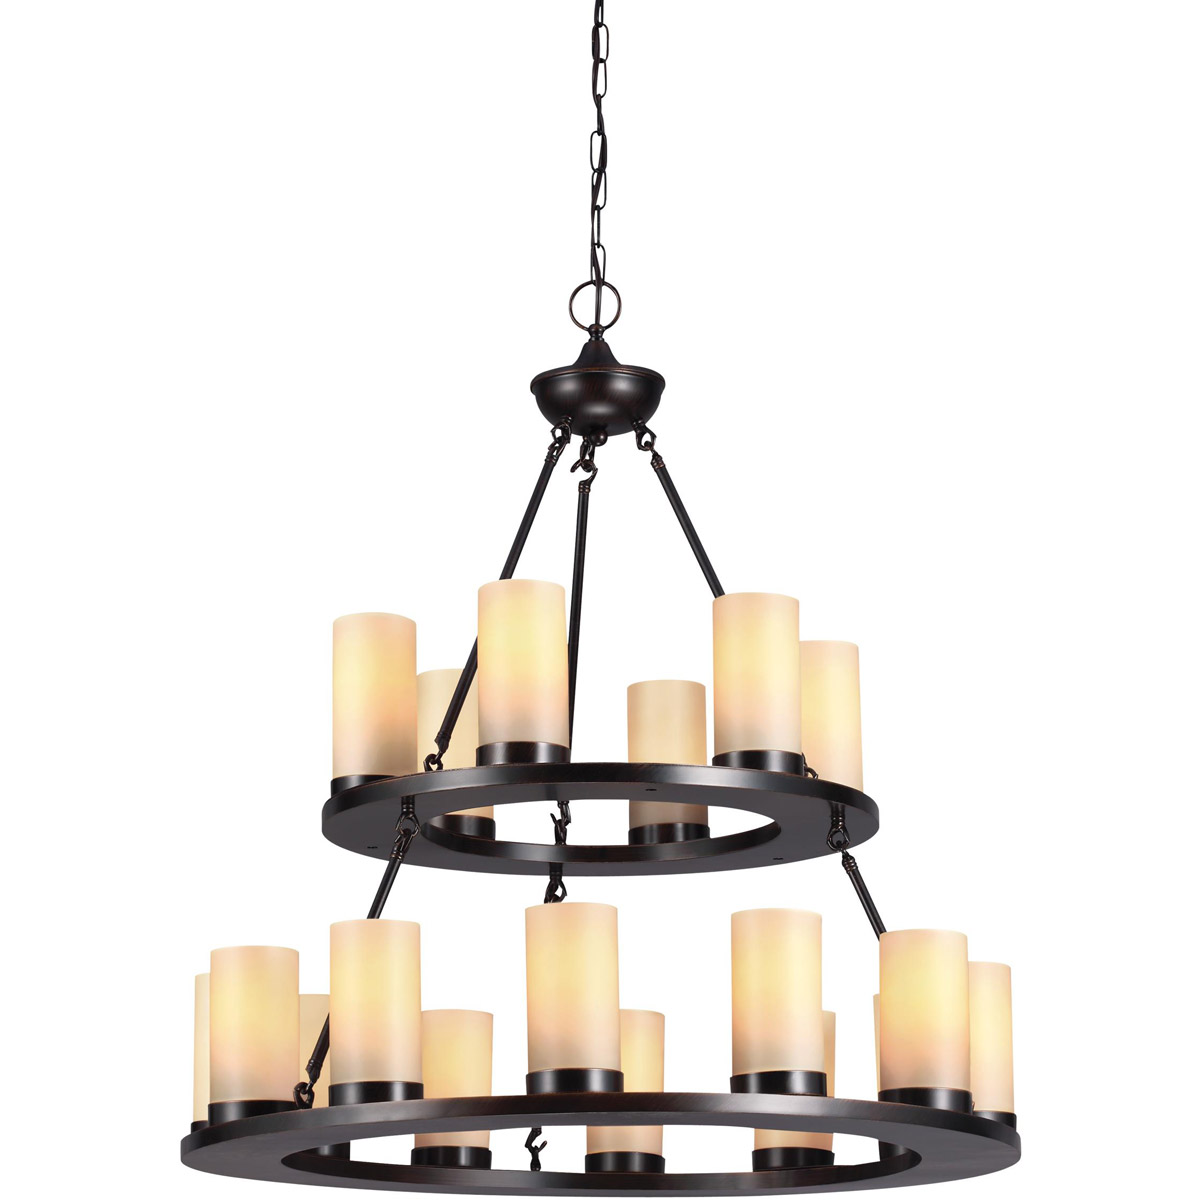 Sea Gull Ellington 18 Light Chandelier Multi-Tier in Burnt Sienna 31585BLE-710